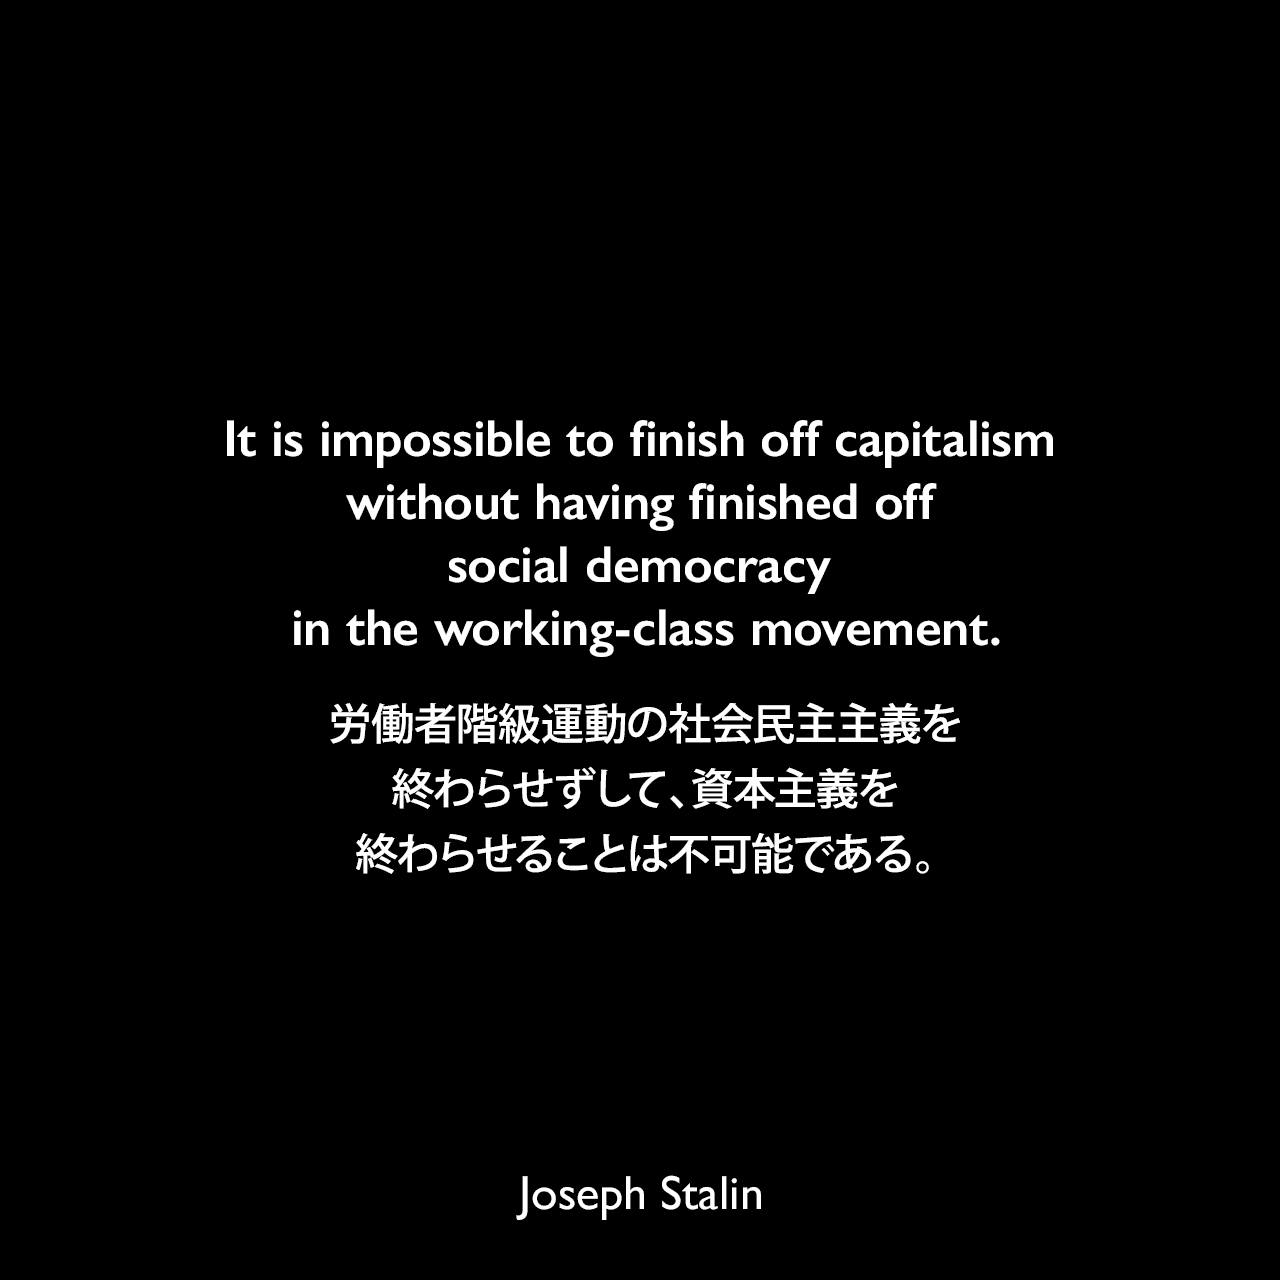 It is impossible to finish off capitalism without having finished off social democracy in the working-class movement.労働者階級運動の社会民主主義を終わらせずして、資本主義を終わらせることは不可能である。Joseph Stalin